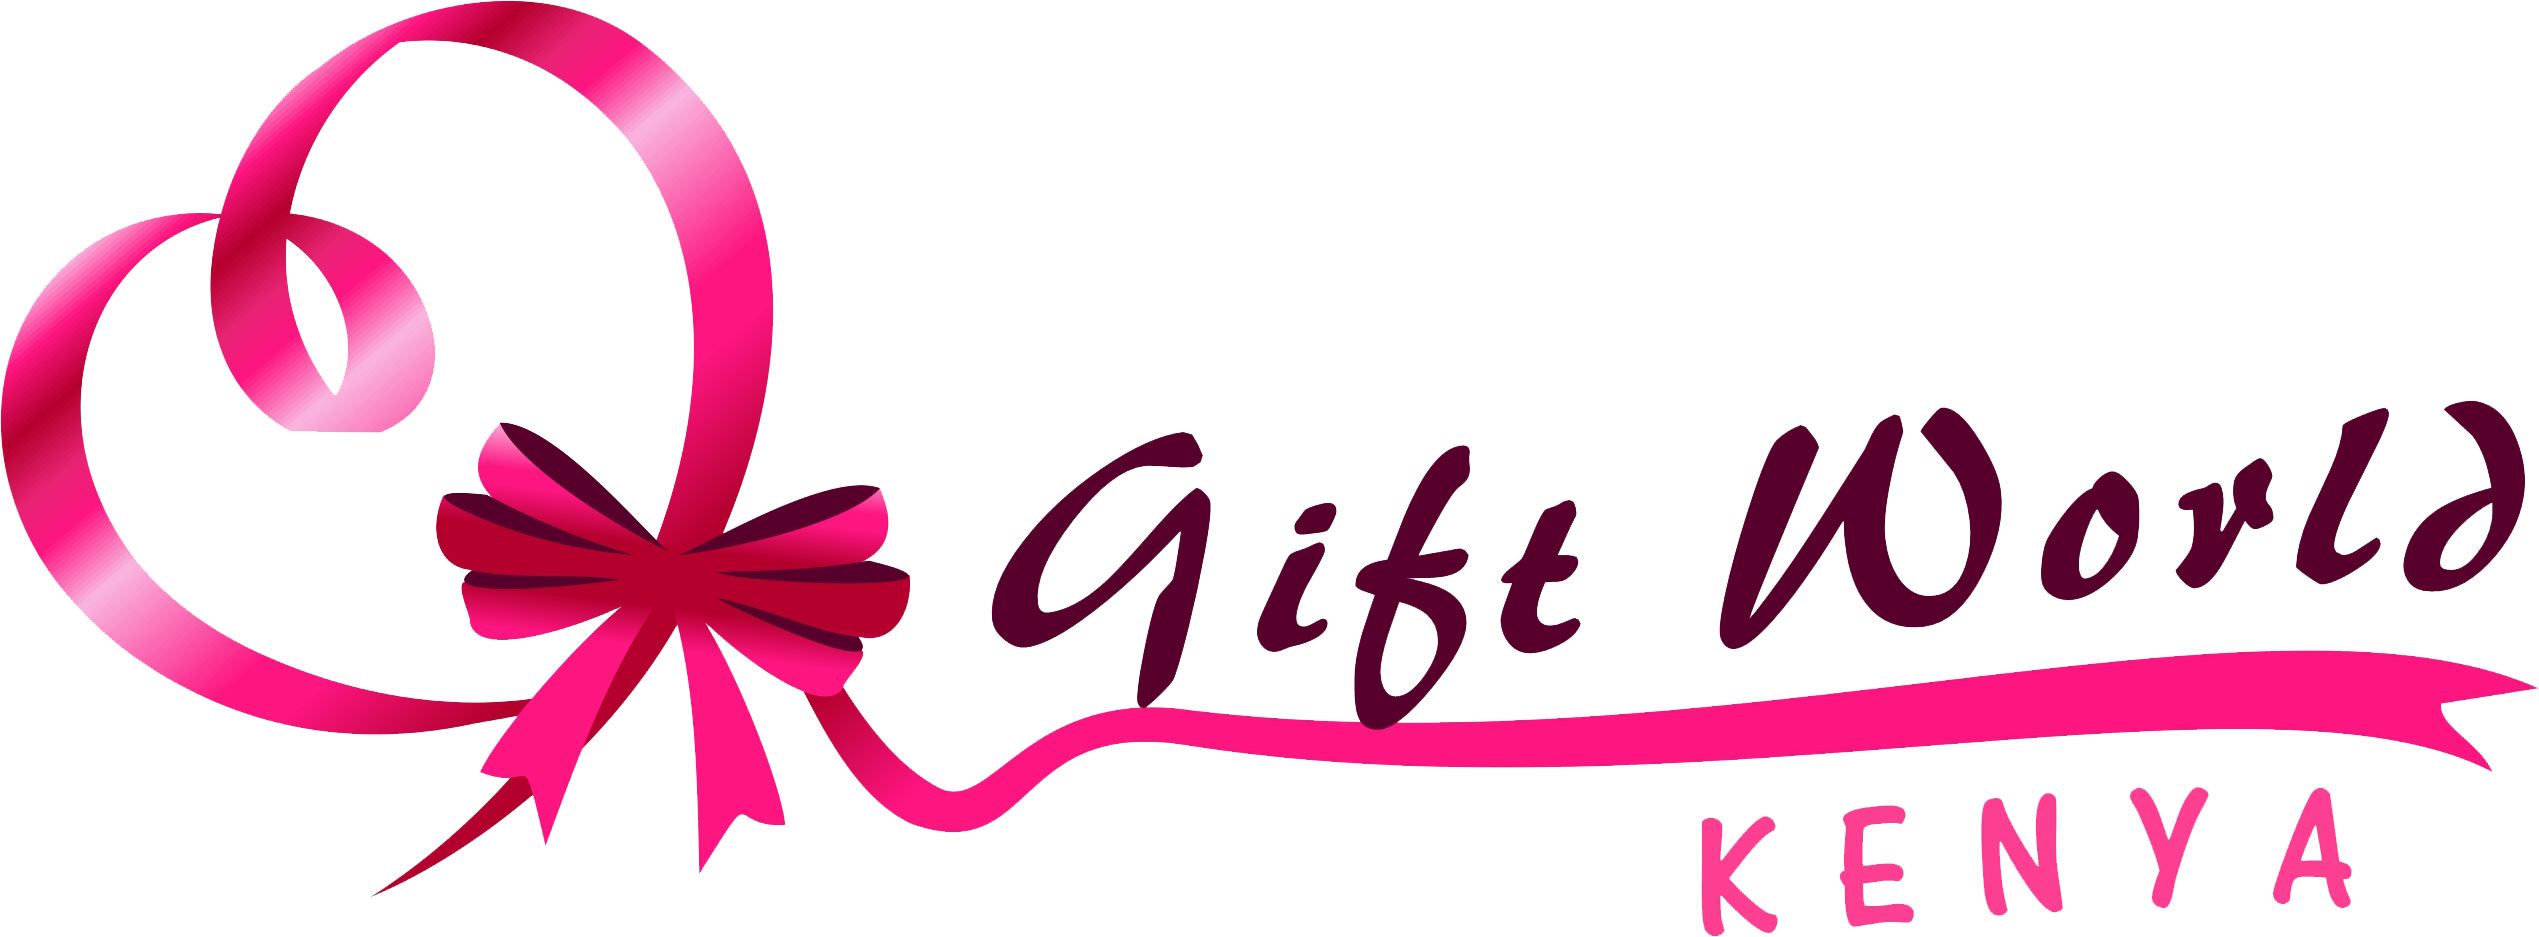 Gift World Kenya